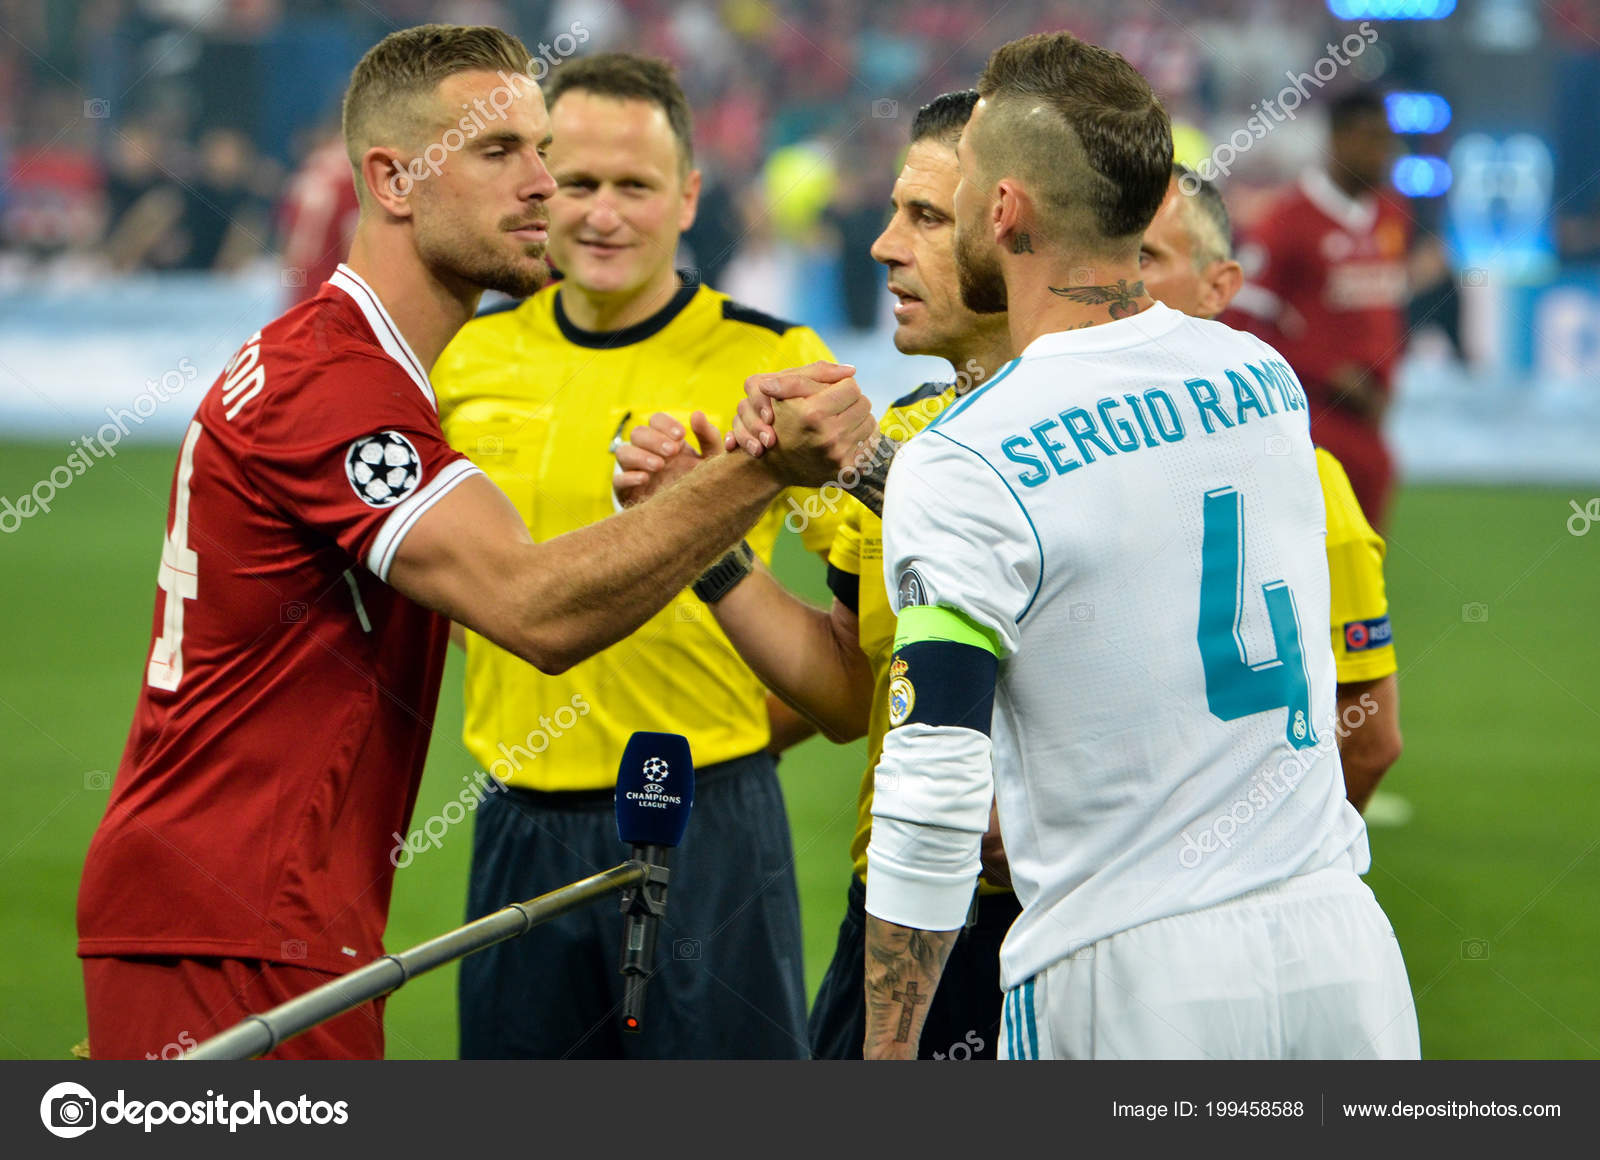 aeb924c888bb9f Kyiv Ukraine May 2018 Sergio Ramos Jordan Henderson 2018 Uefa — Stock Photo